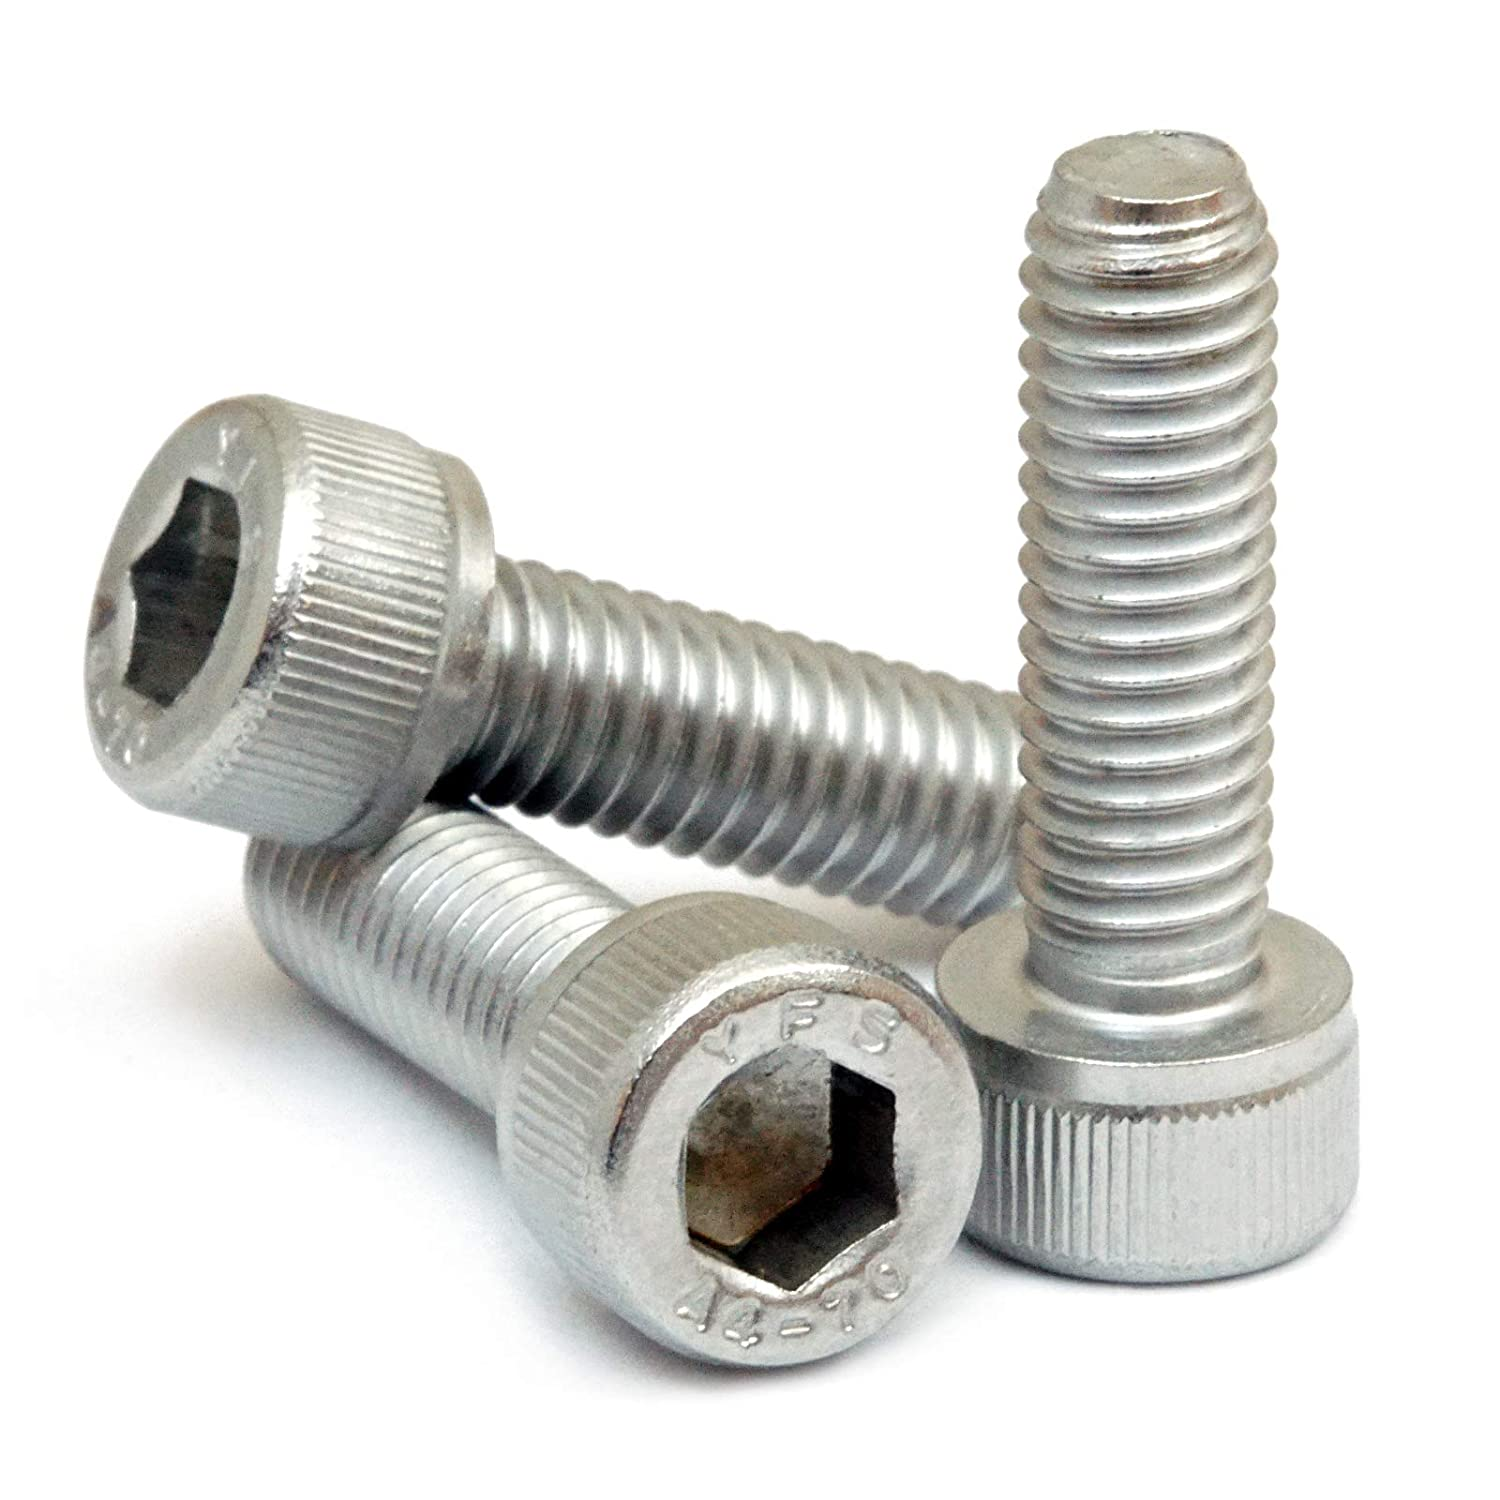 Set Screw 316 Stainless Steel Thread Size M3-0.5 FastenerParts Super Corrosion Resistant